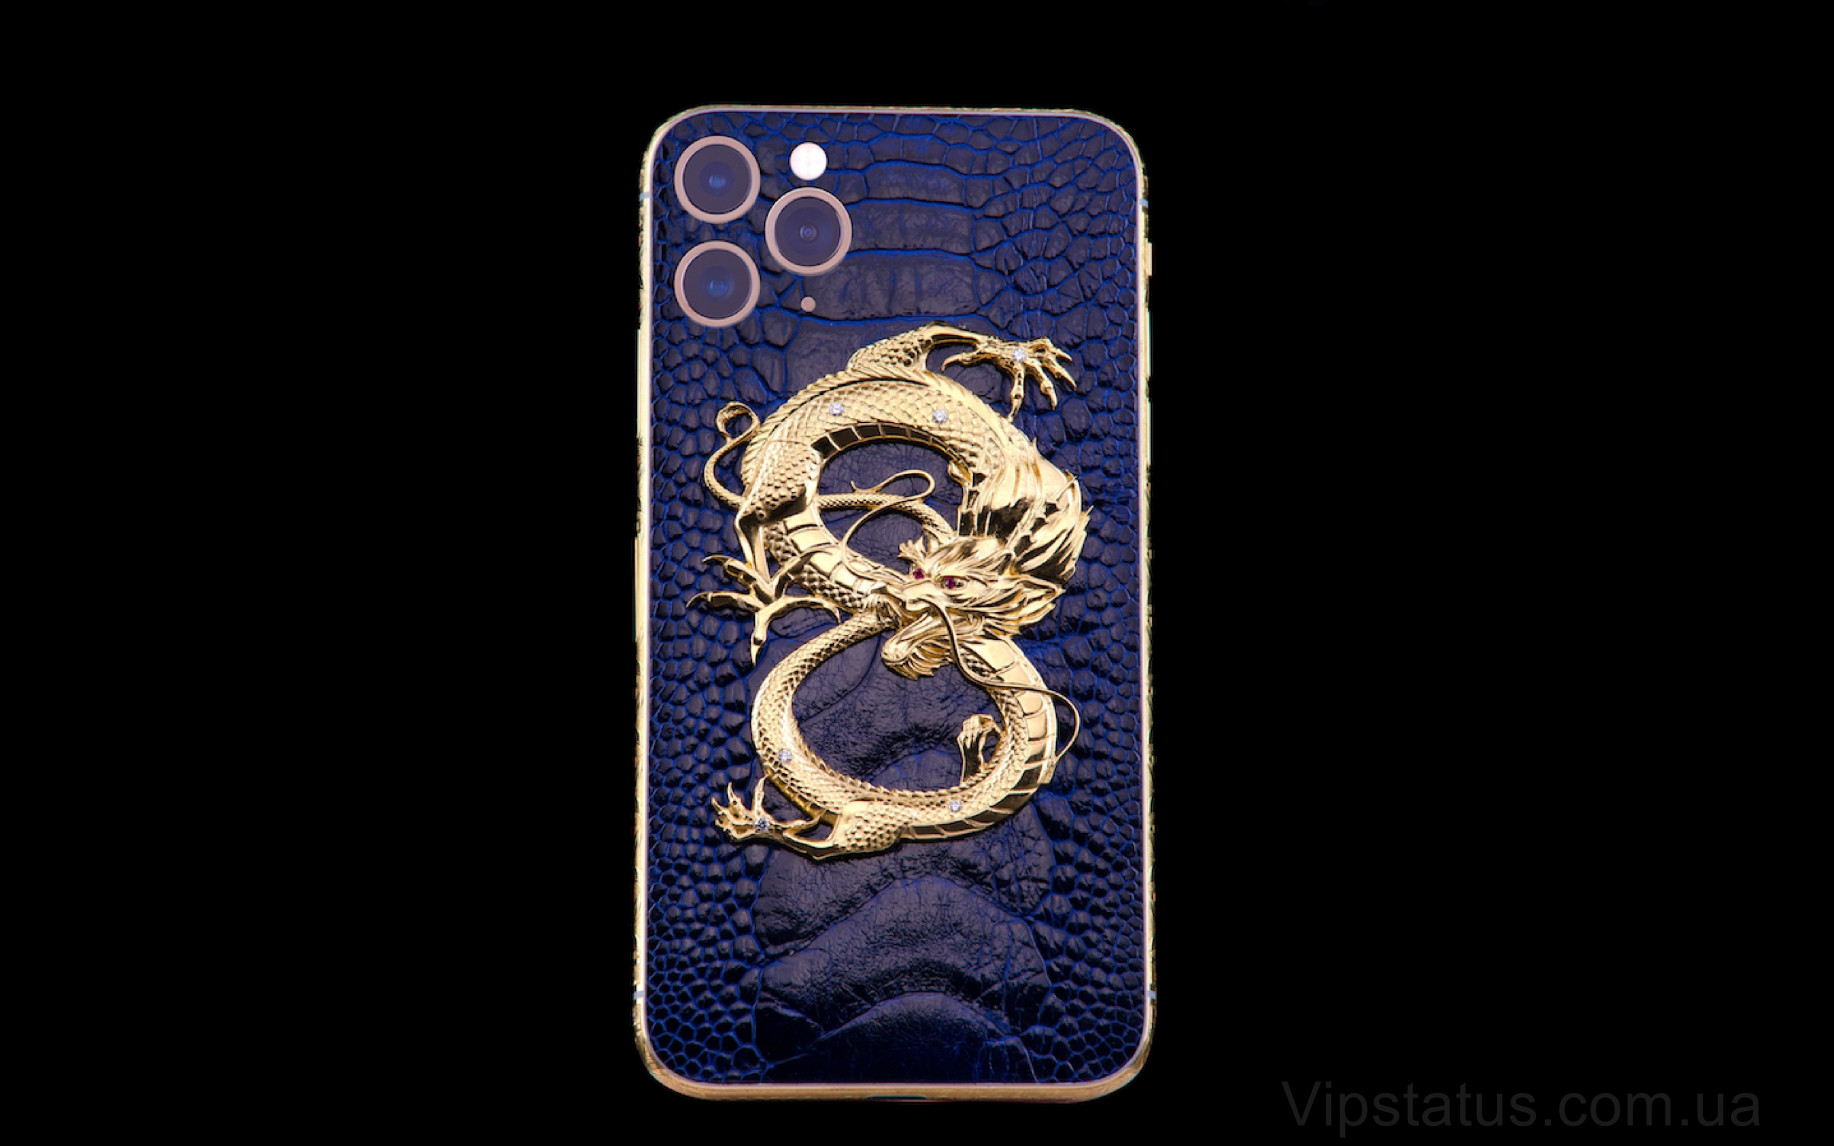 Elite Ruby Dragon IPHONE 11 PRO 512 GB Ruby Dragon IPHONE 11 PRO 512 GB image 2